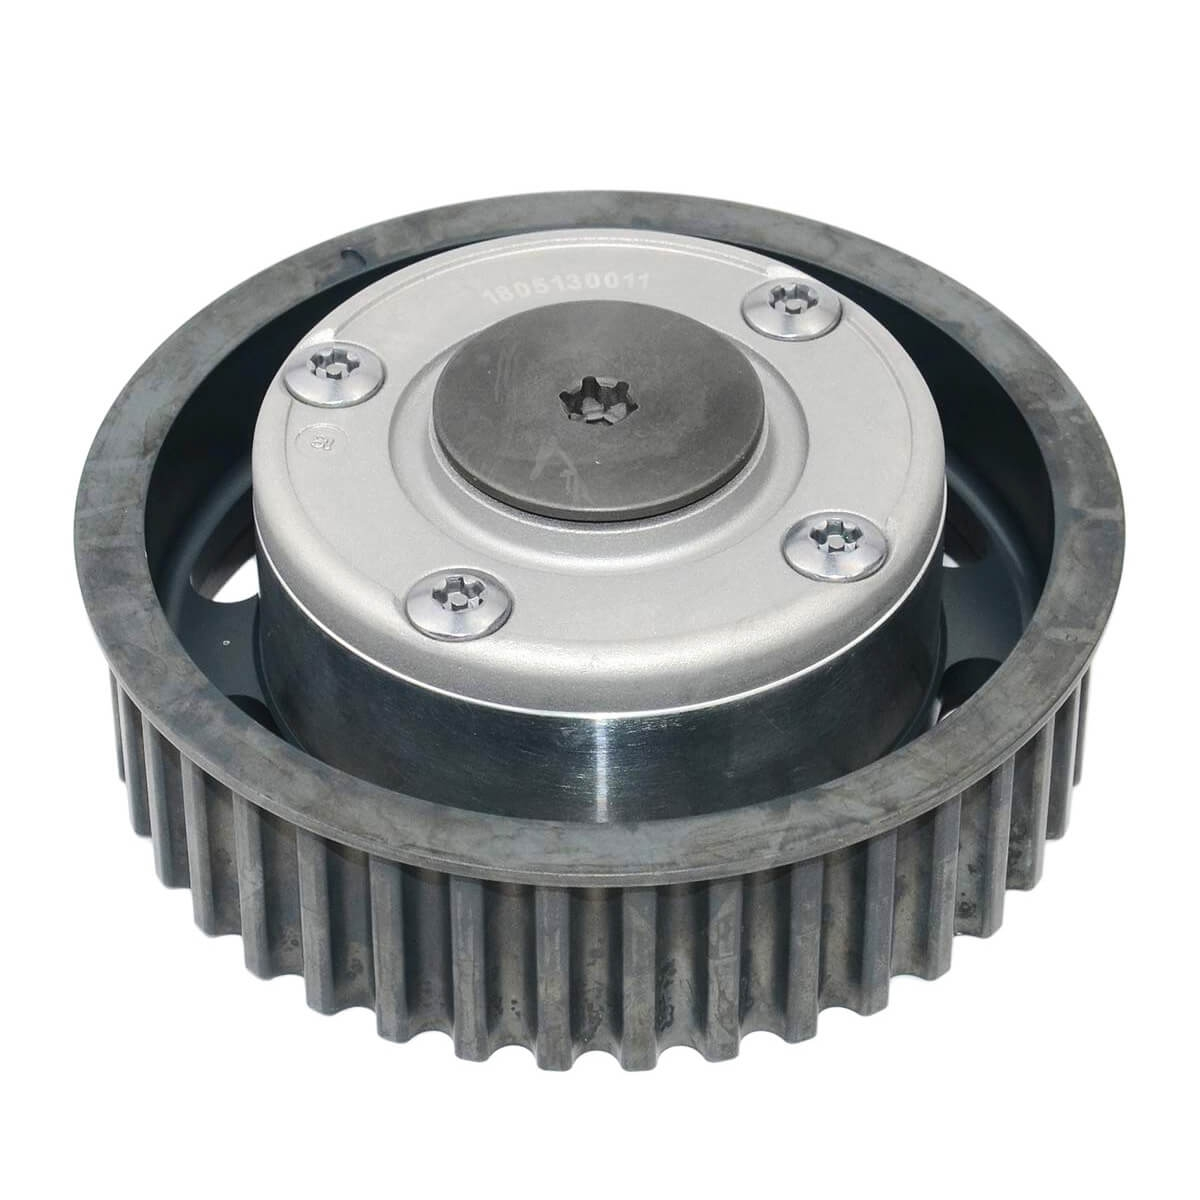 DODGE AVENGER Cam Dephaser Pulley